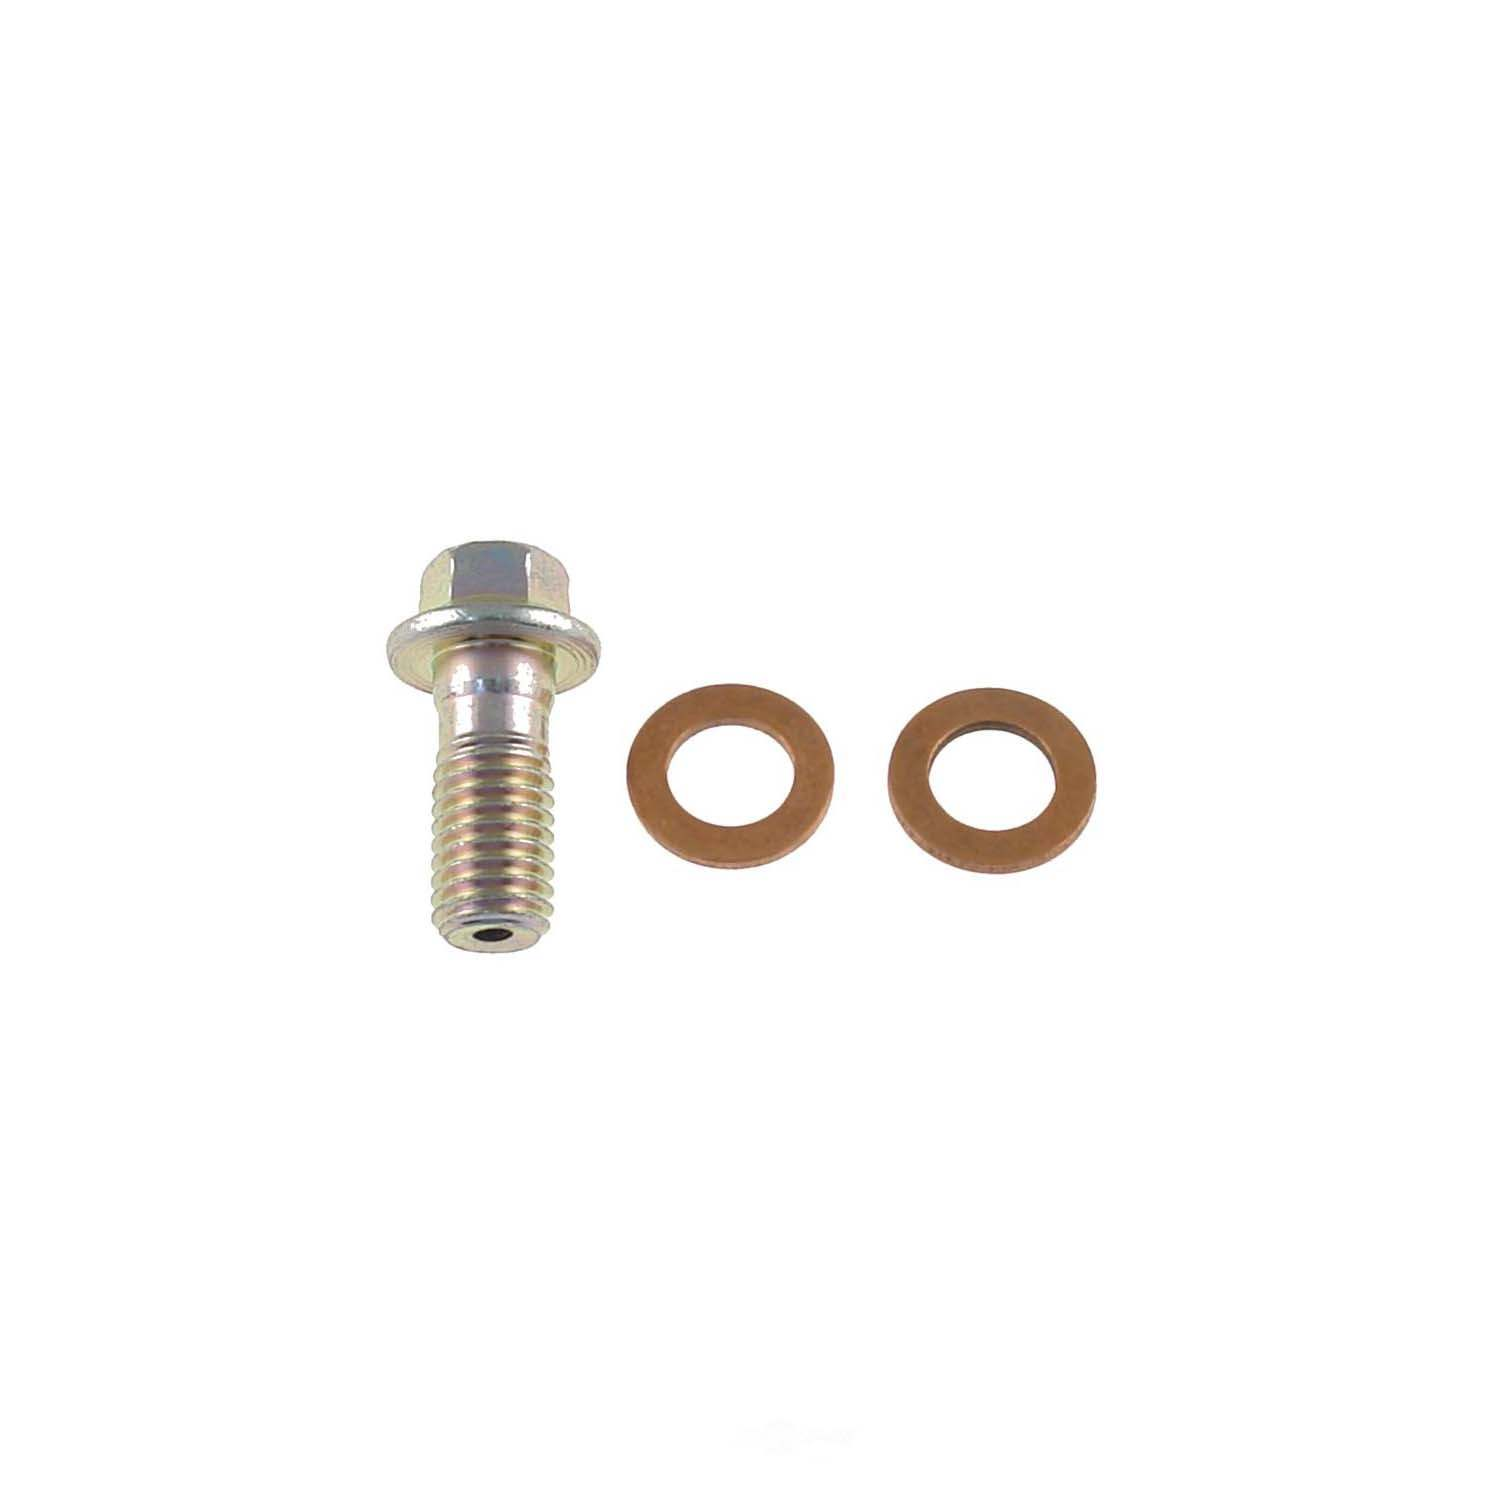 CARLSON QUALITY BRAKE PARTS - Brake Hydraulic Banjo Bolt - CRL H9458-2